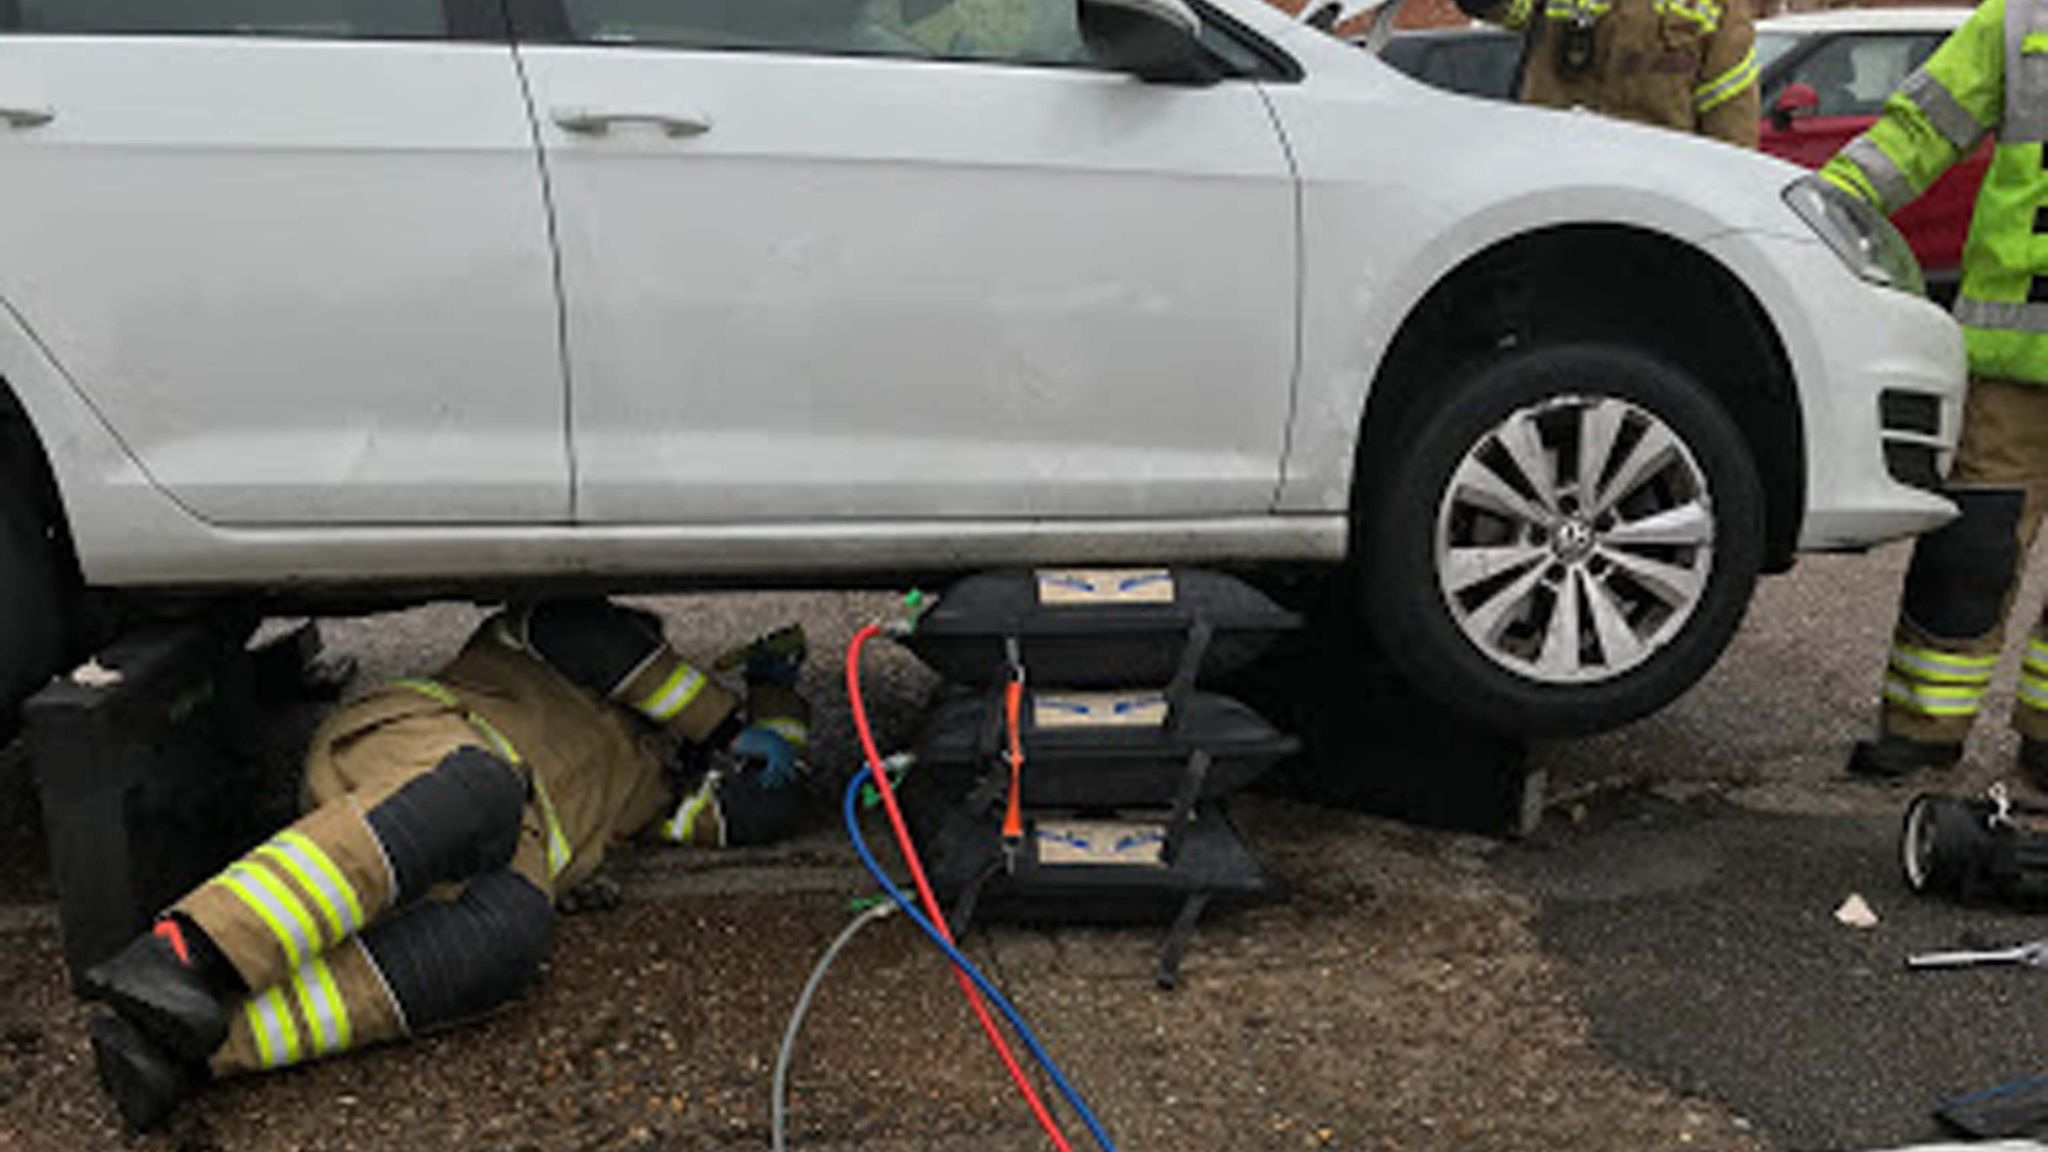 Handout photo dated 15/07/2020 issued by the RSPCA of one of the three vehicles that rescuers partially dismantled while trying to free a kitten that kept climbing into engines in King's Lynn, Norfolk.